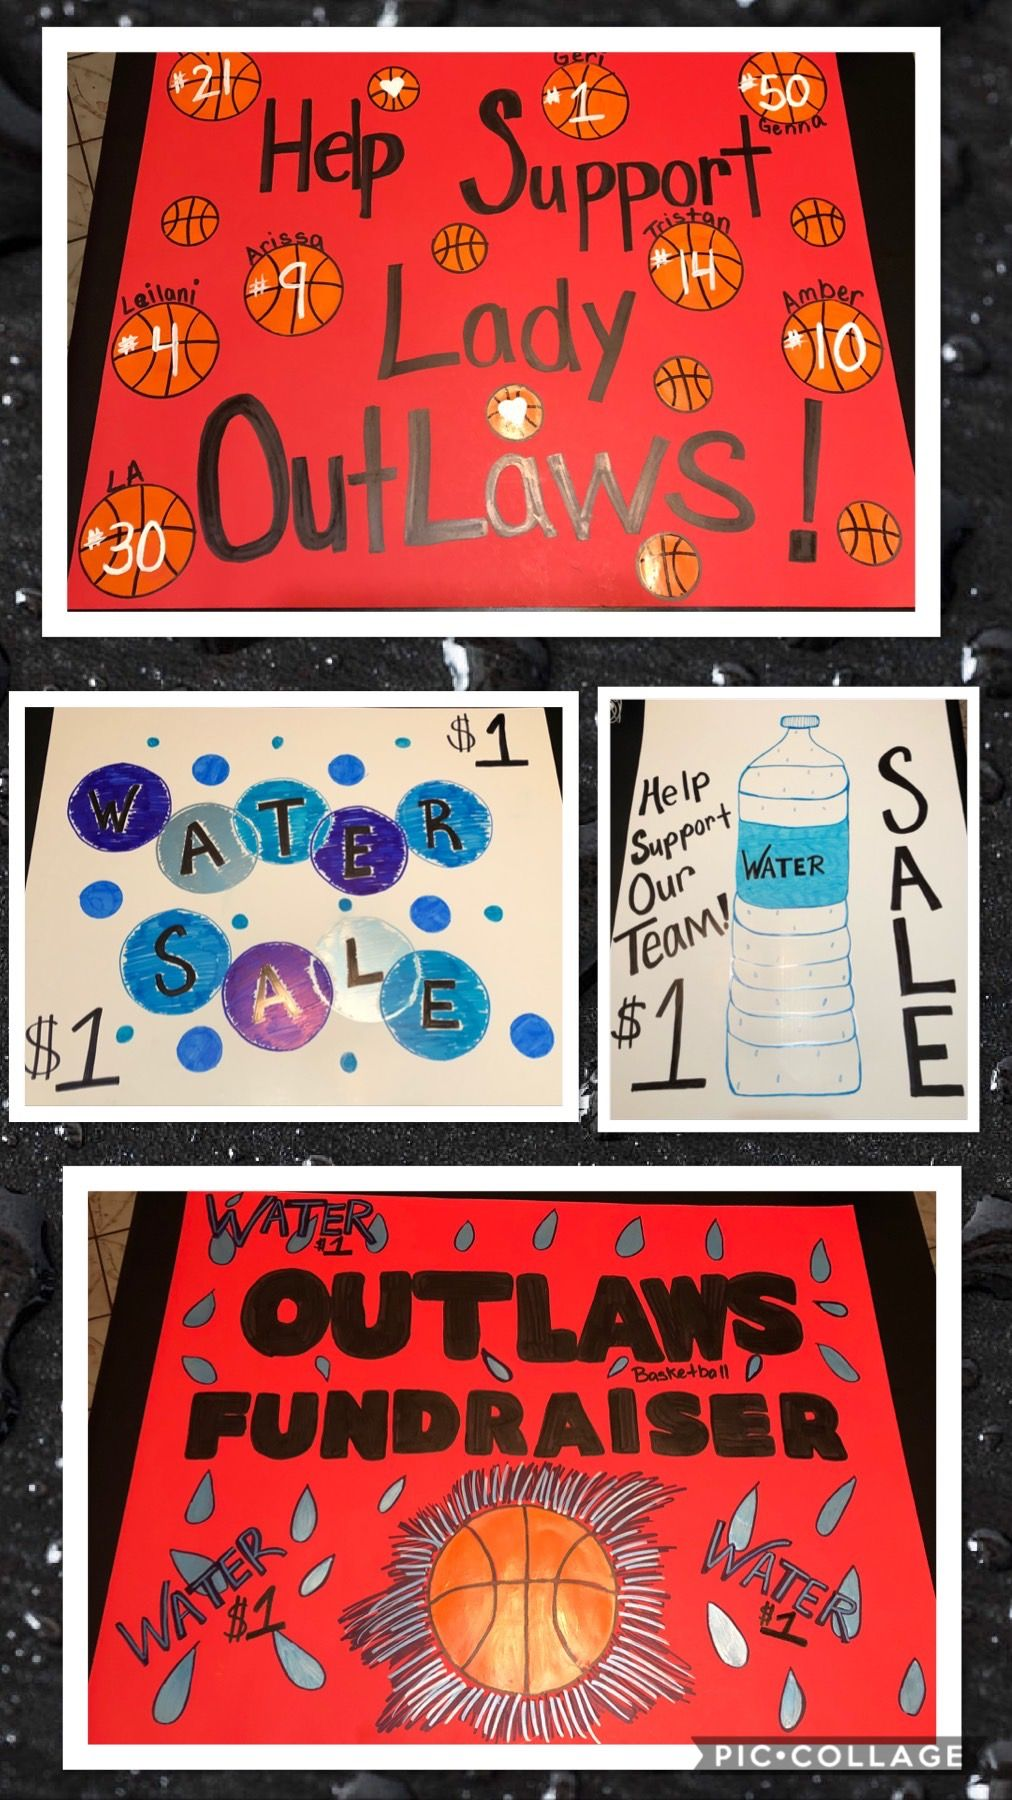 Water Sale Fundraiser Poster Ideas Fundraising Poster Fundraising Softball Fundraising